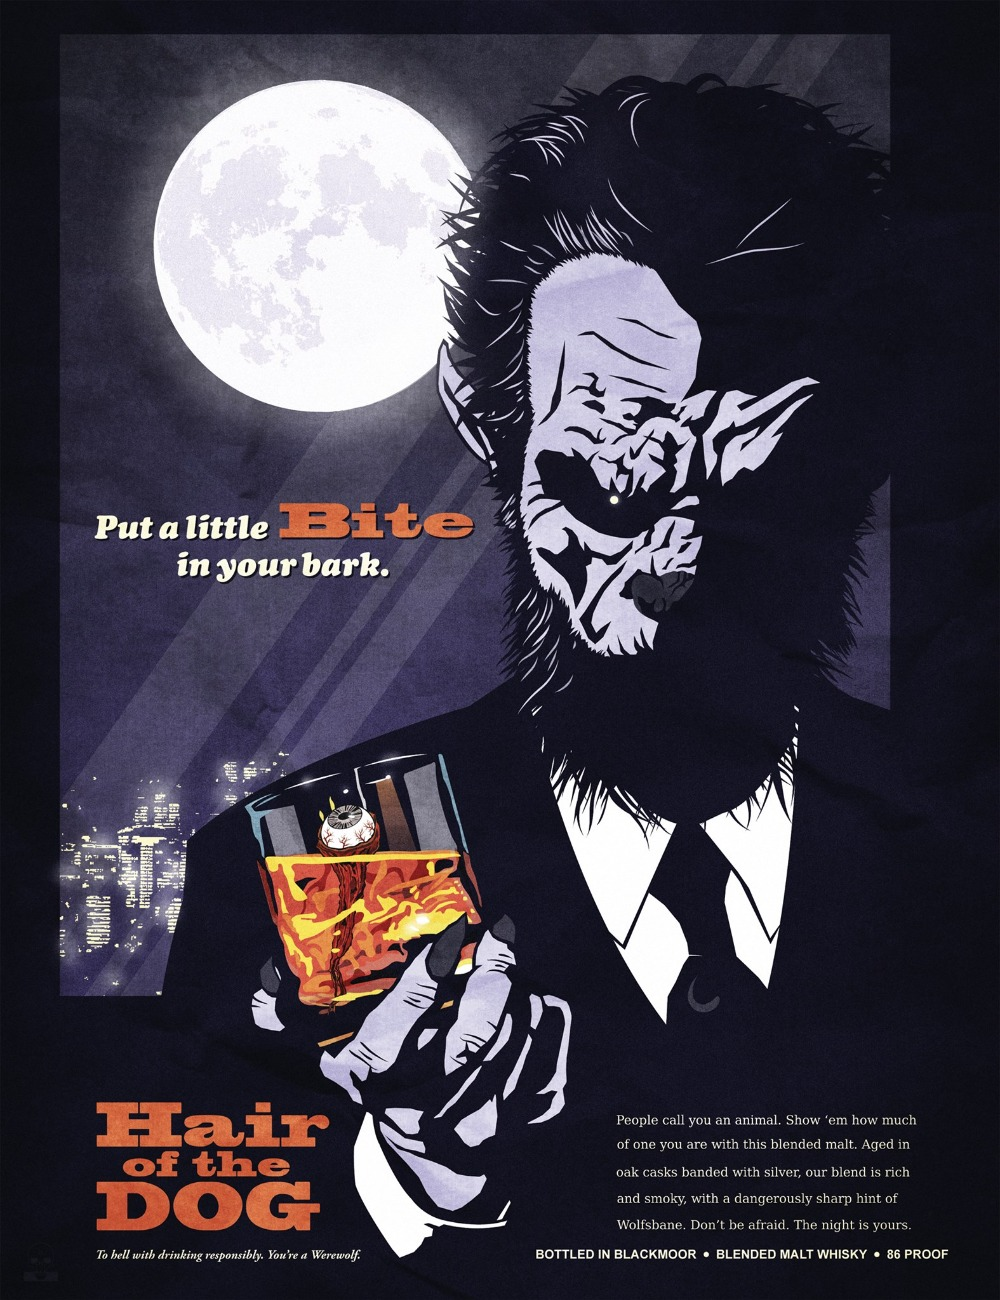 Hair of the Dog Whiskey